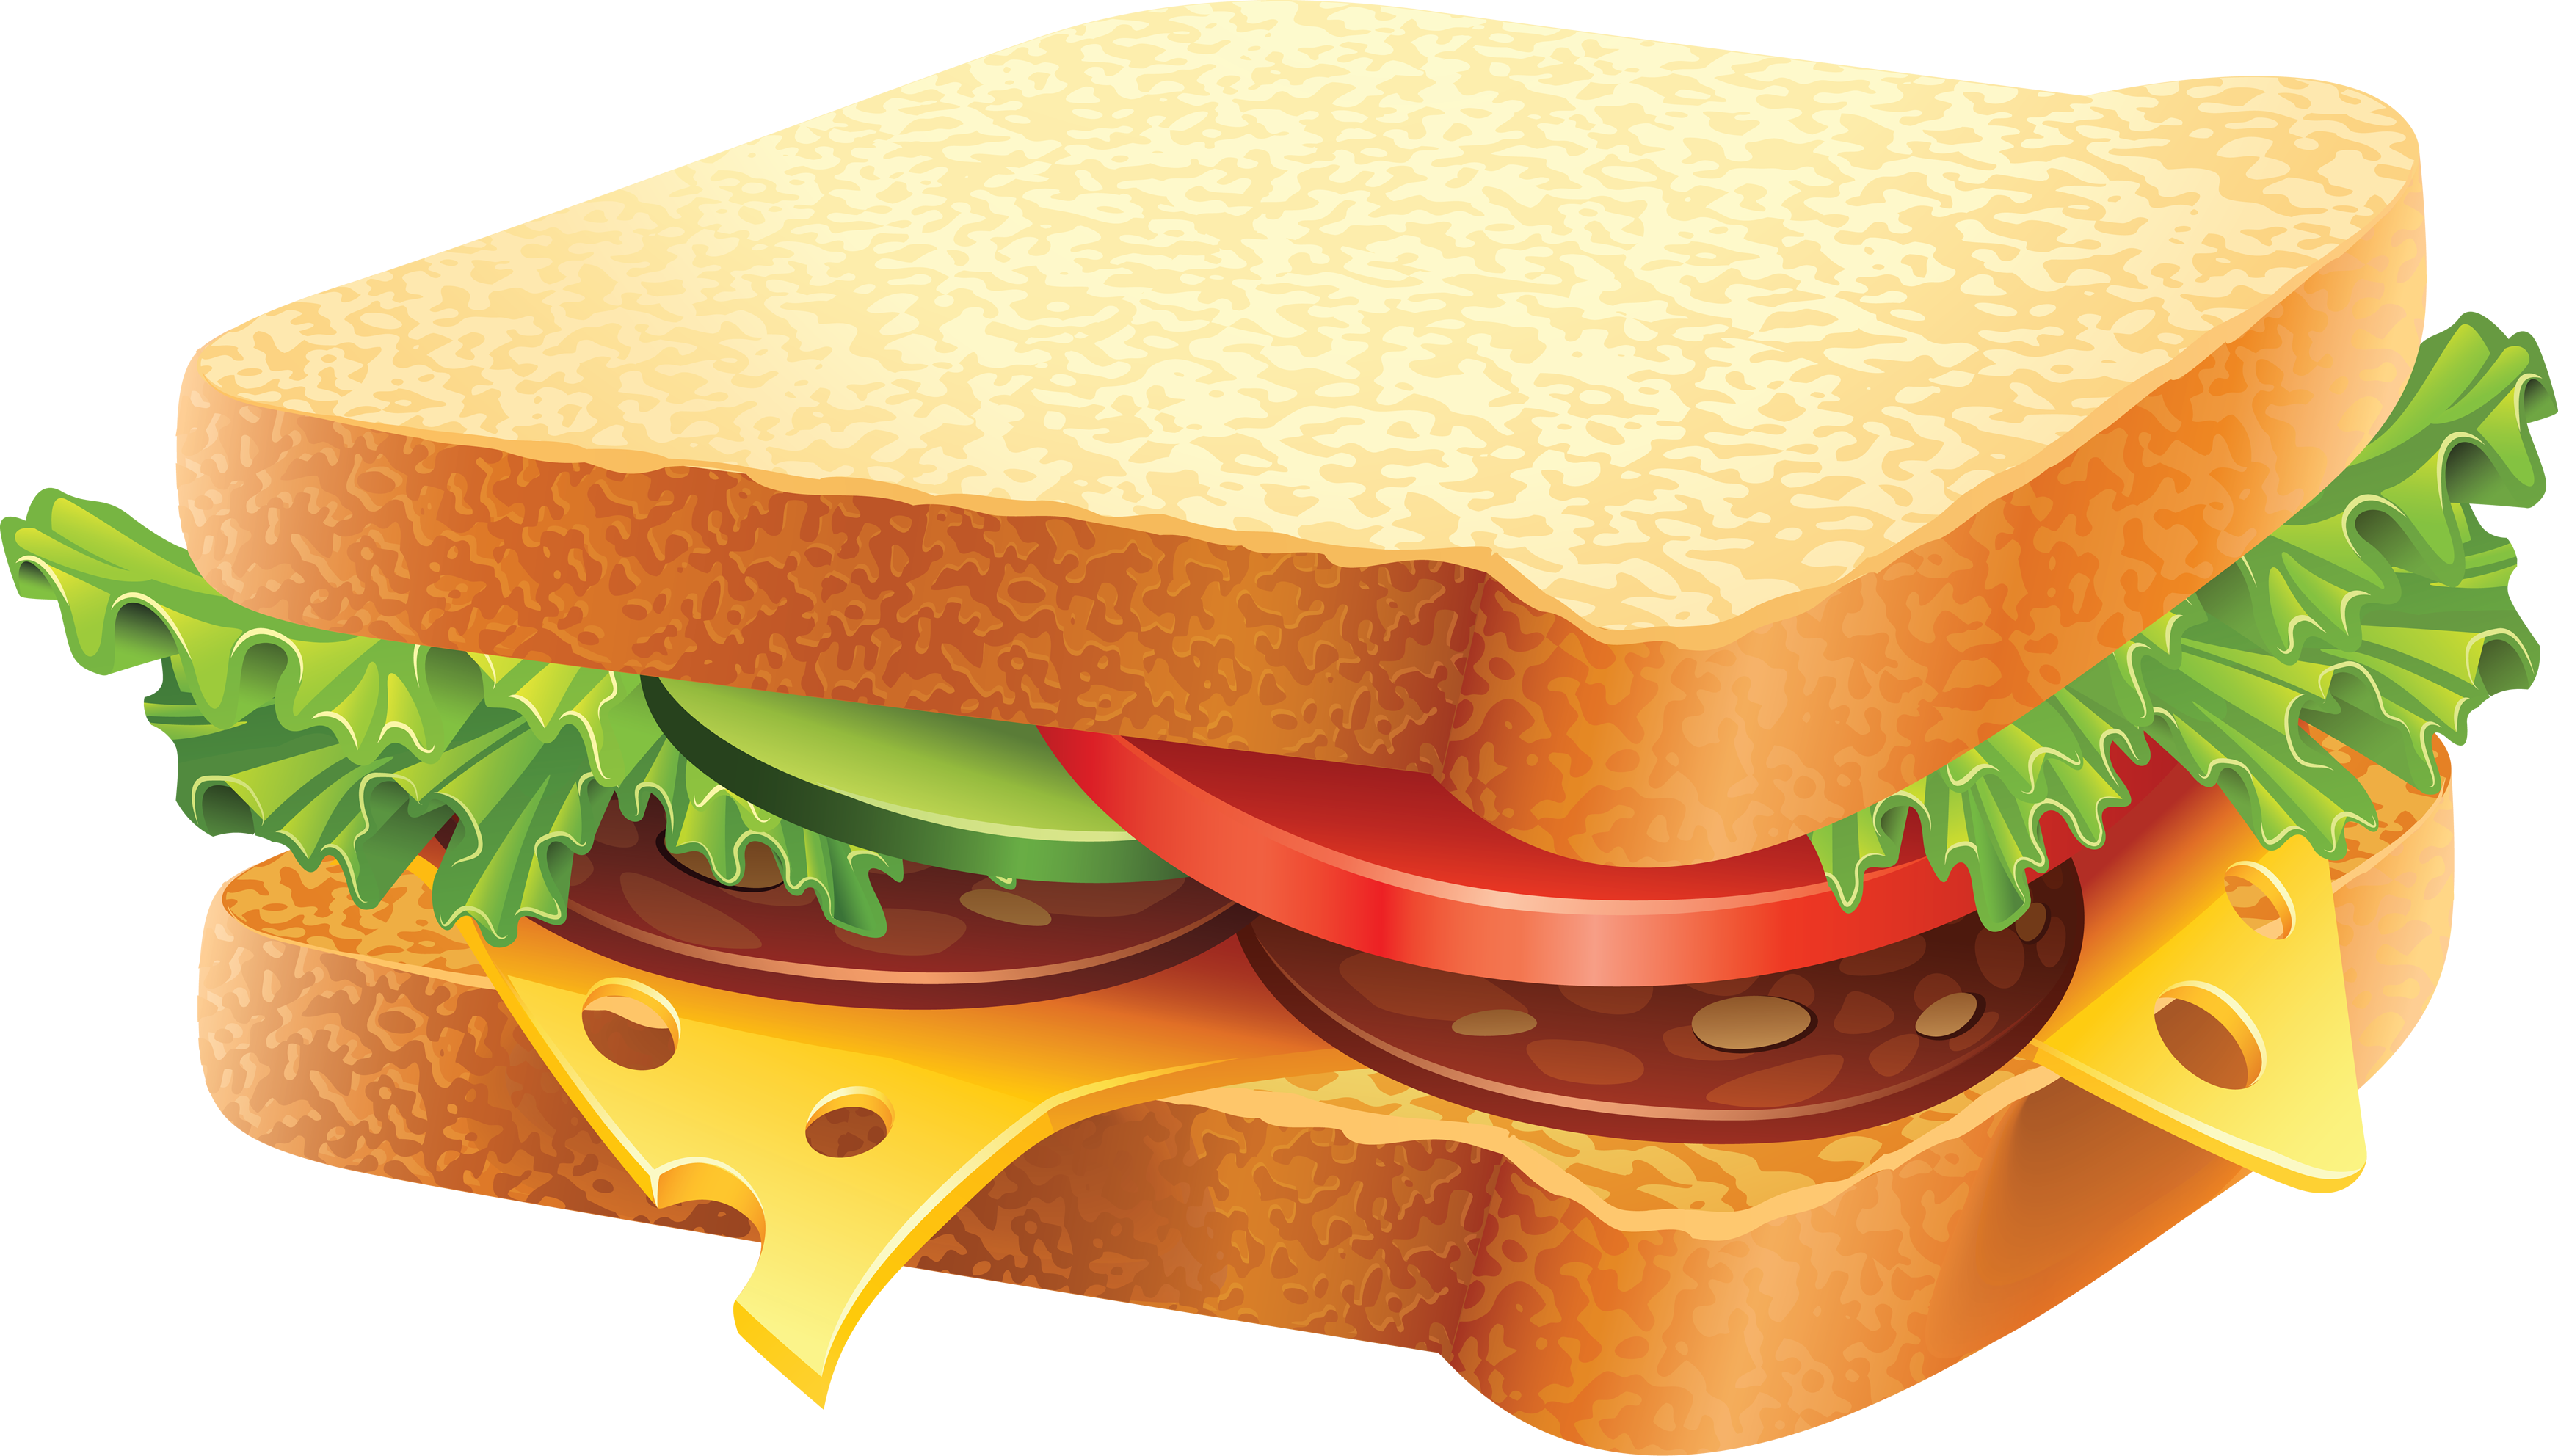 Sandwich Clip Art Free - Sandwiches Vector , Transparent Cartoon - Jing.fm